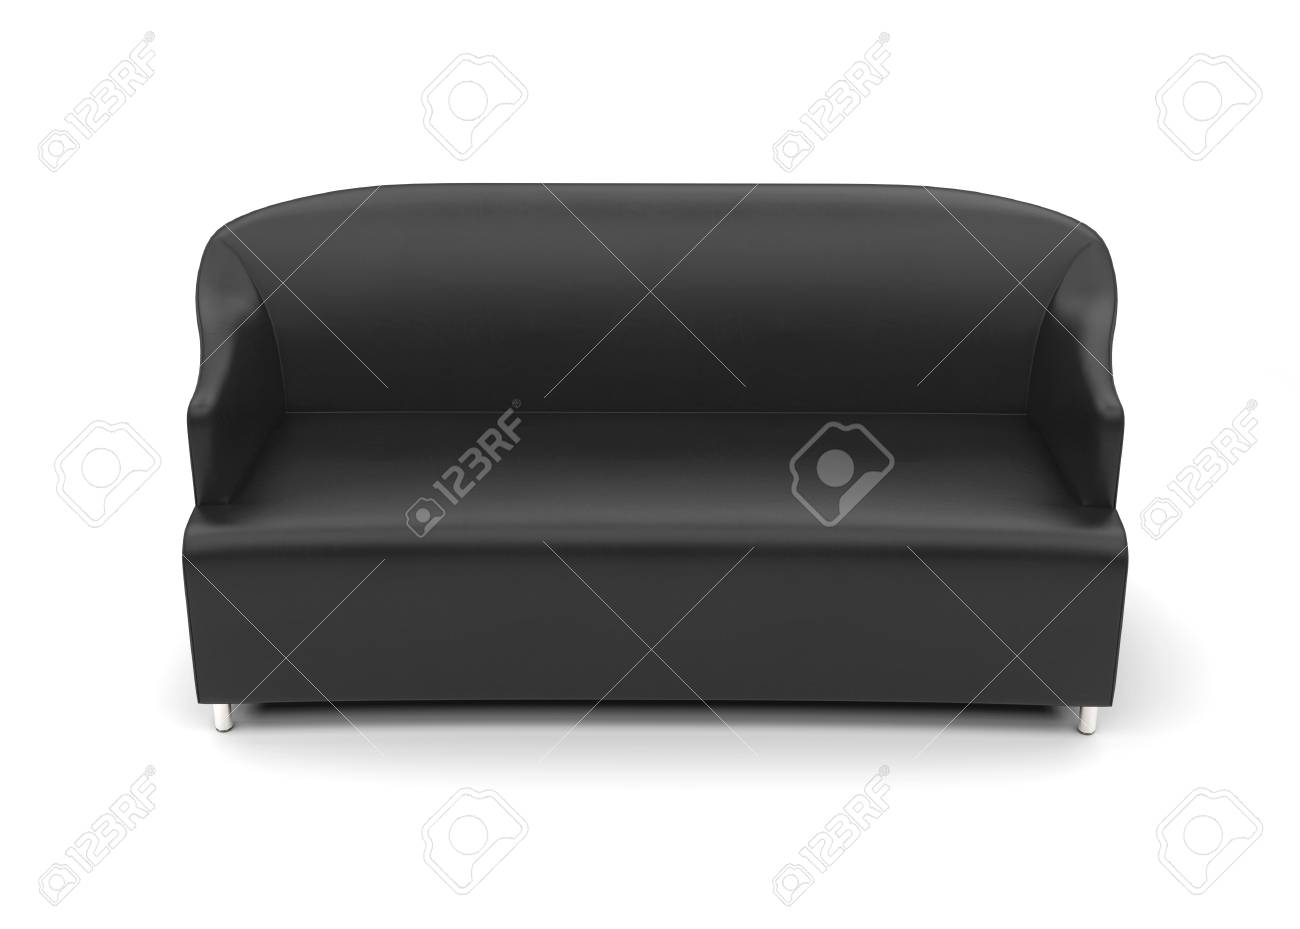 Fabulous Black Leather Sofa Top View On White Background 3D Render Squirreltailoven Fun Painted Chair Ideas Images Squirreltailovenorg